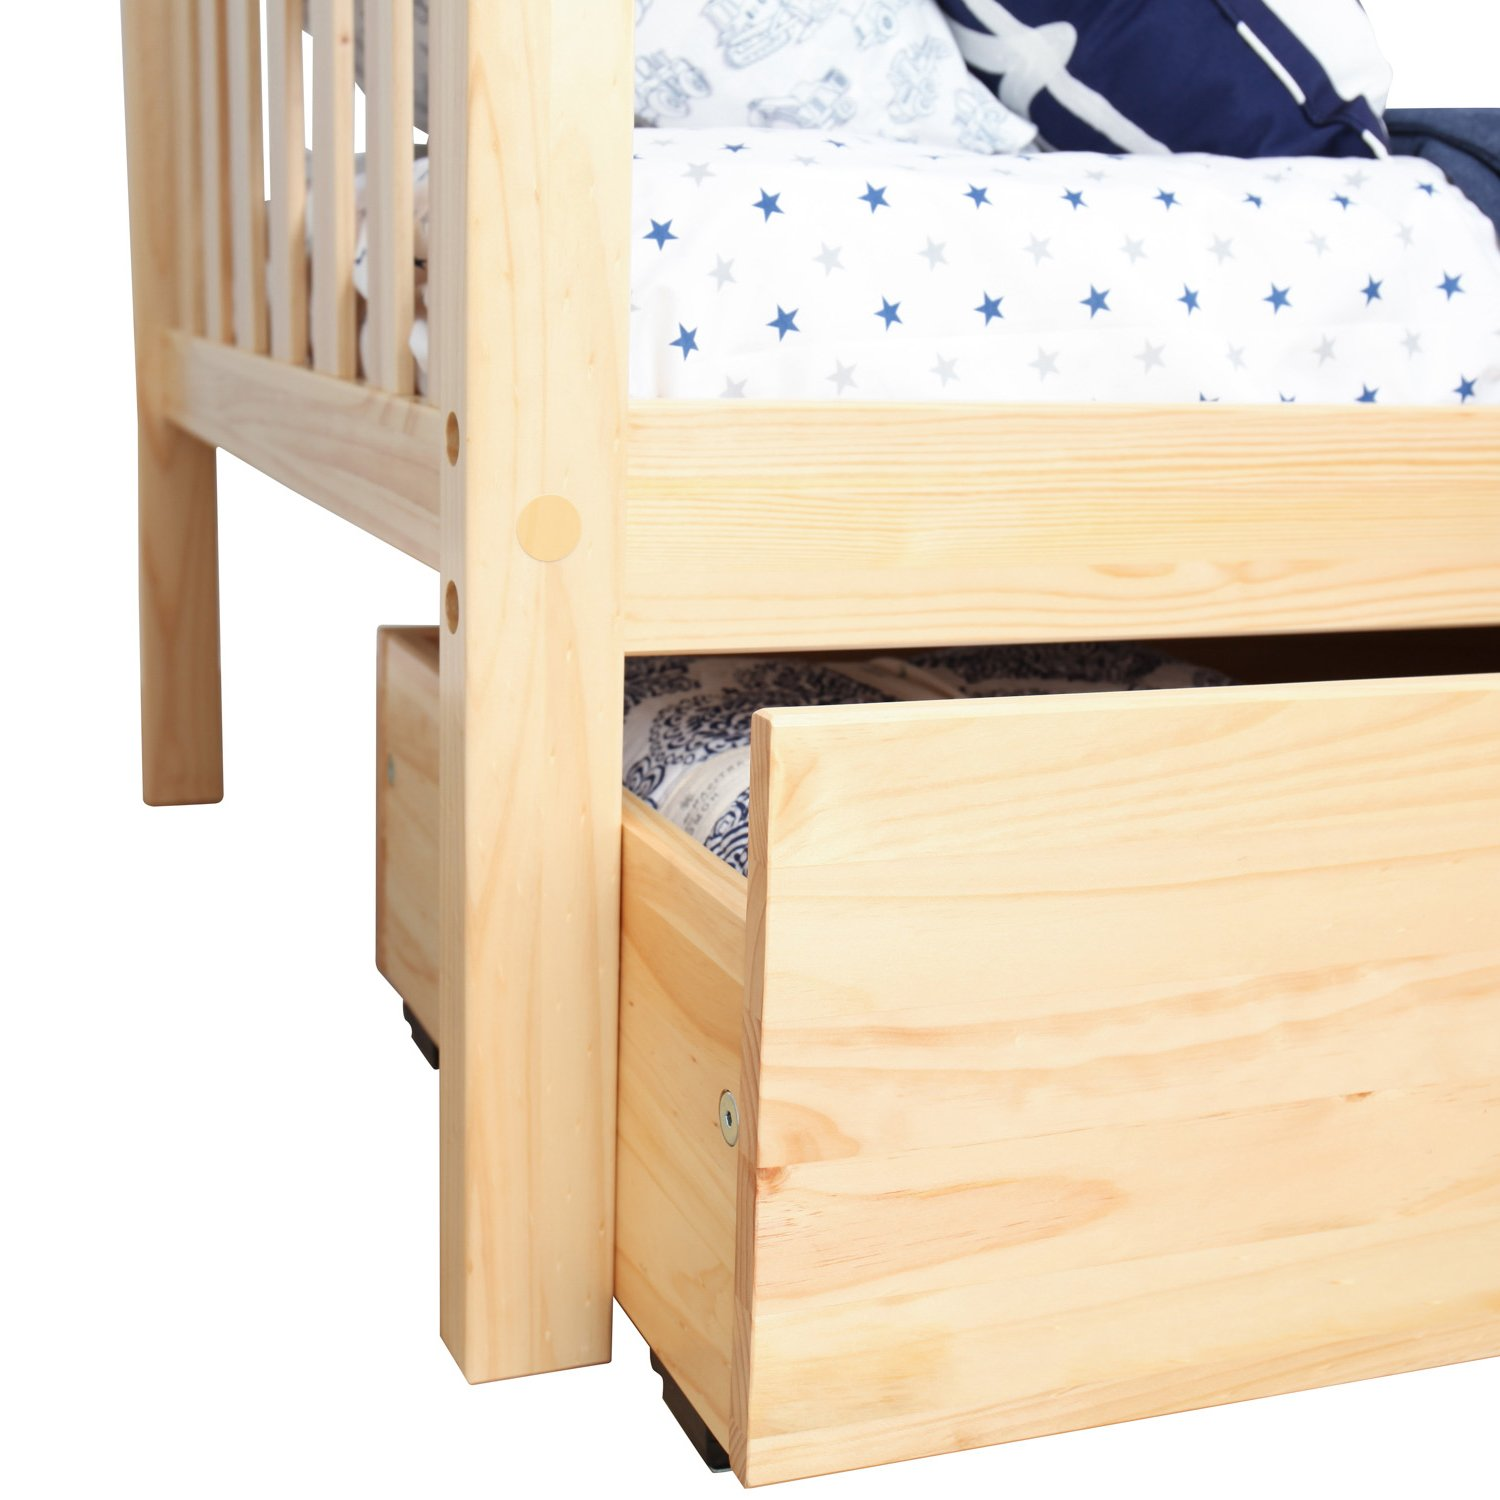 Max & Lily Solid Wood Twin-Size Bed with Under Bed Storage Drawers, Natural by Max & Lily (Image #8)